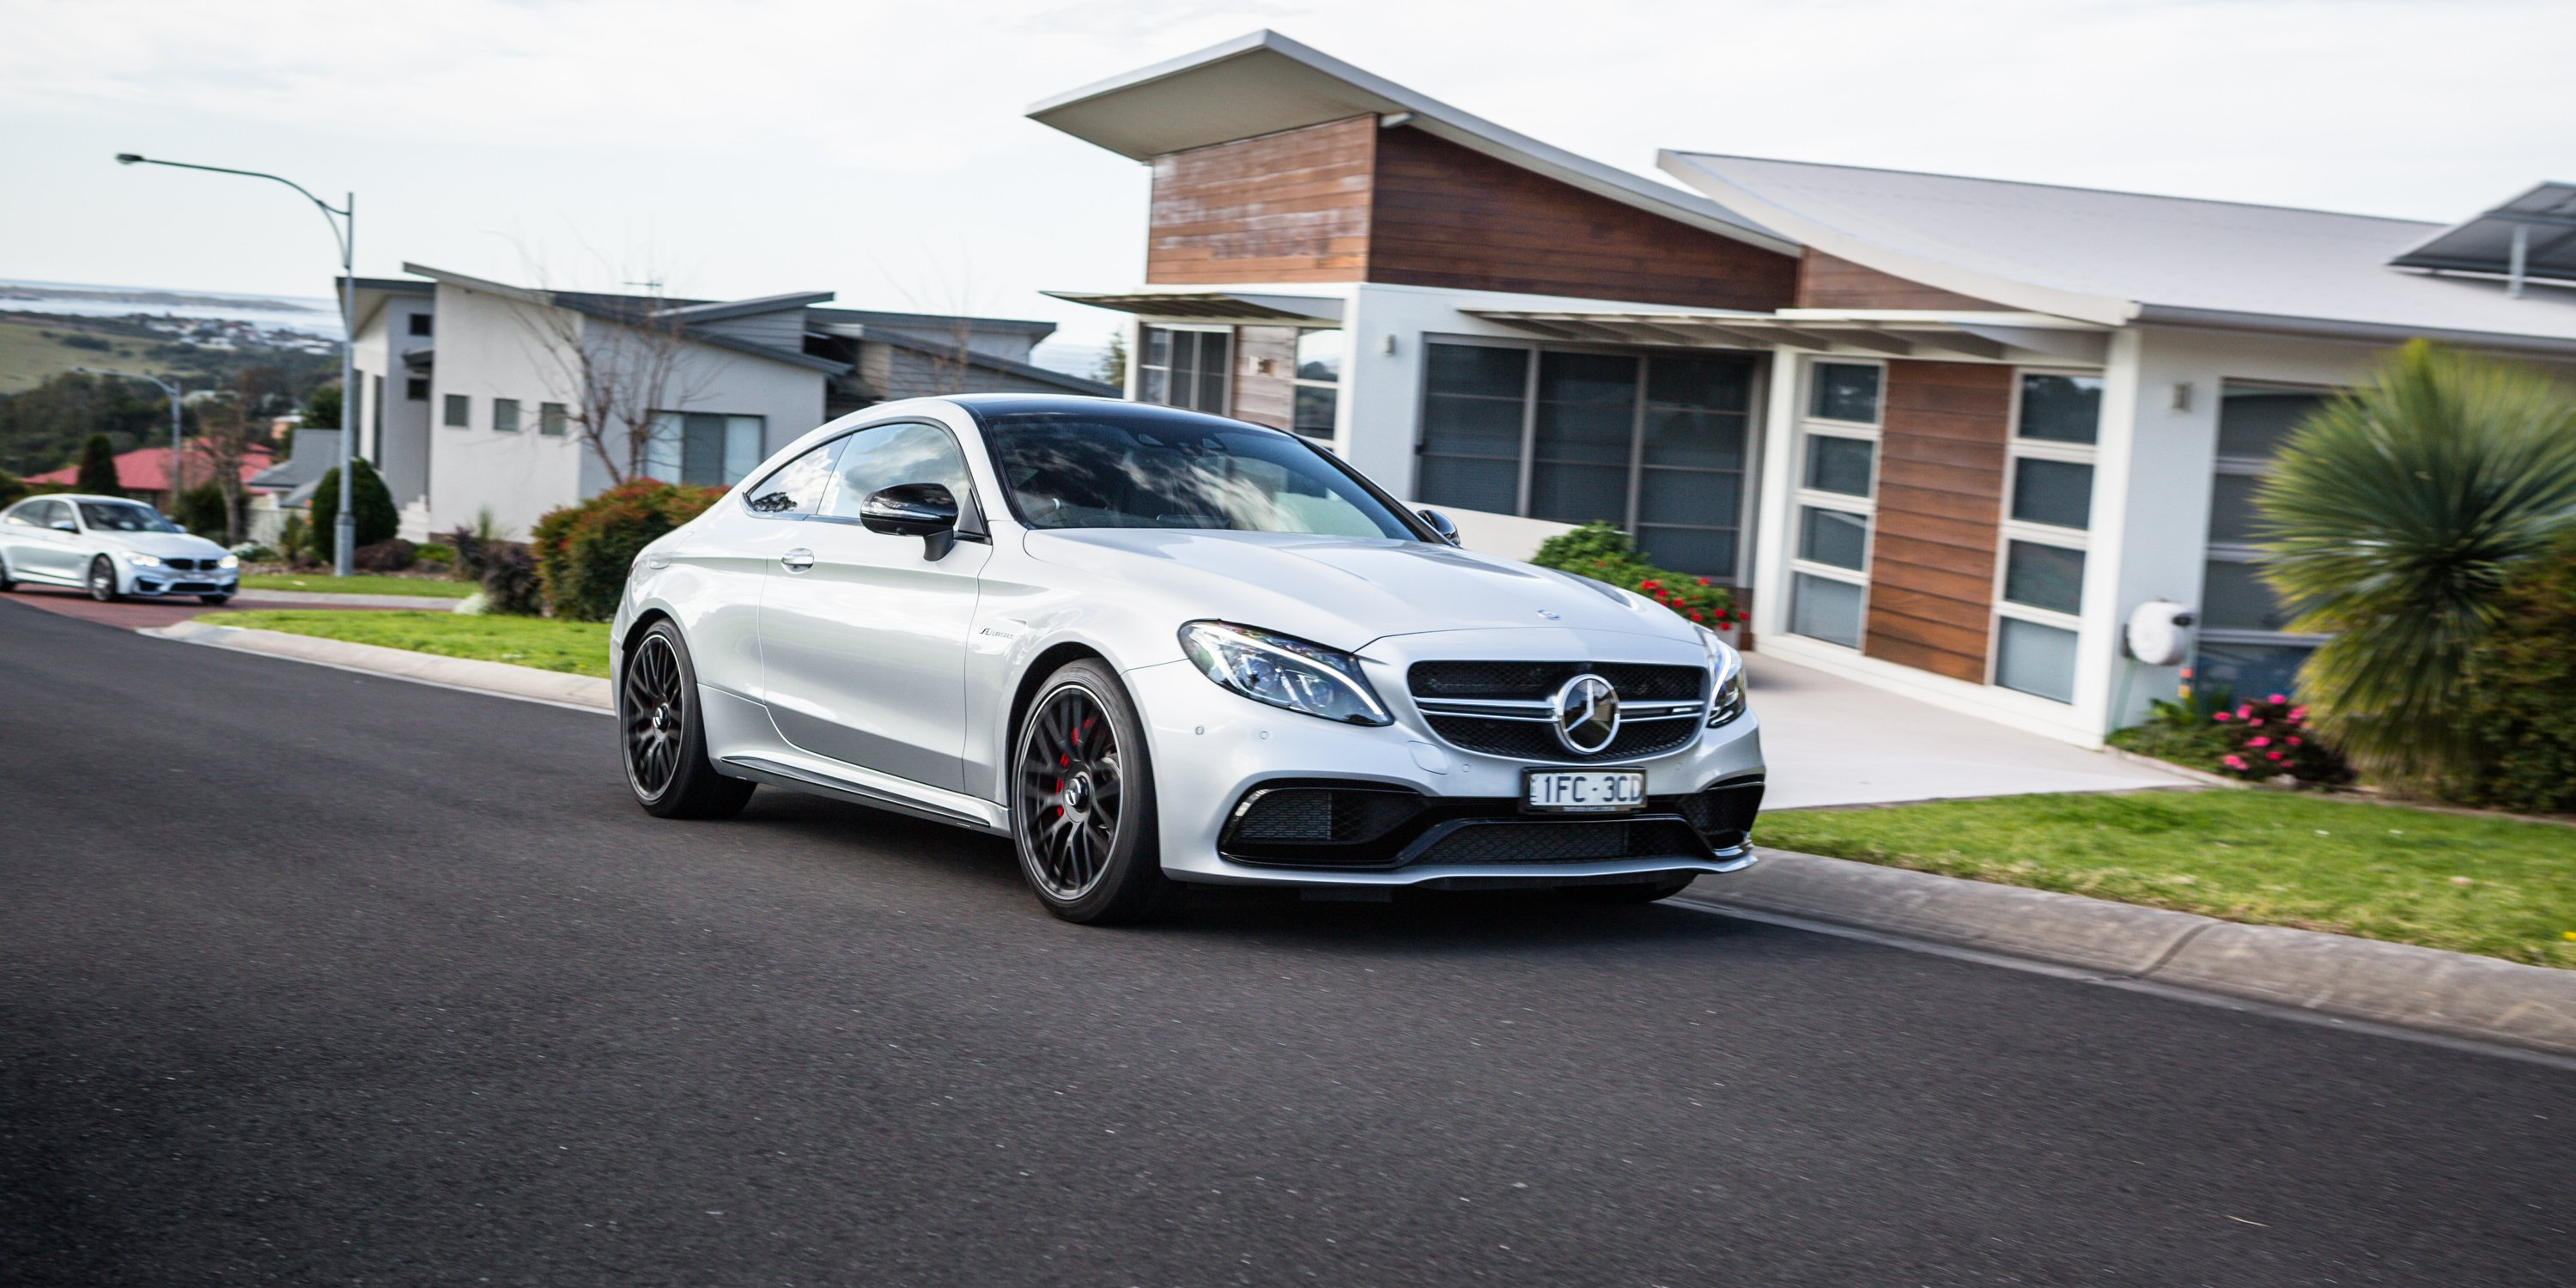 2017 Mercedes Amg C63 Coupe Review Specs And Price >> 2017 Mercedes-AMG C63 S Coupe Review | CarAdvice